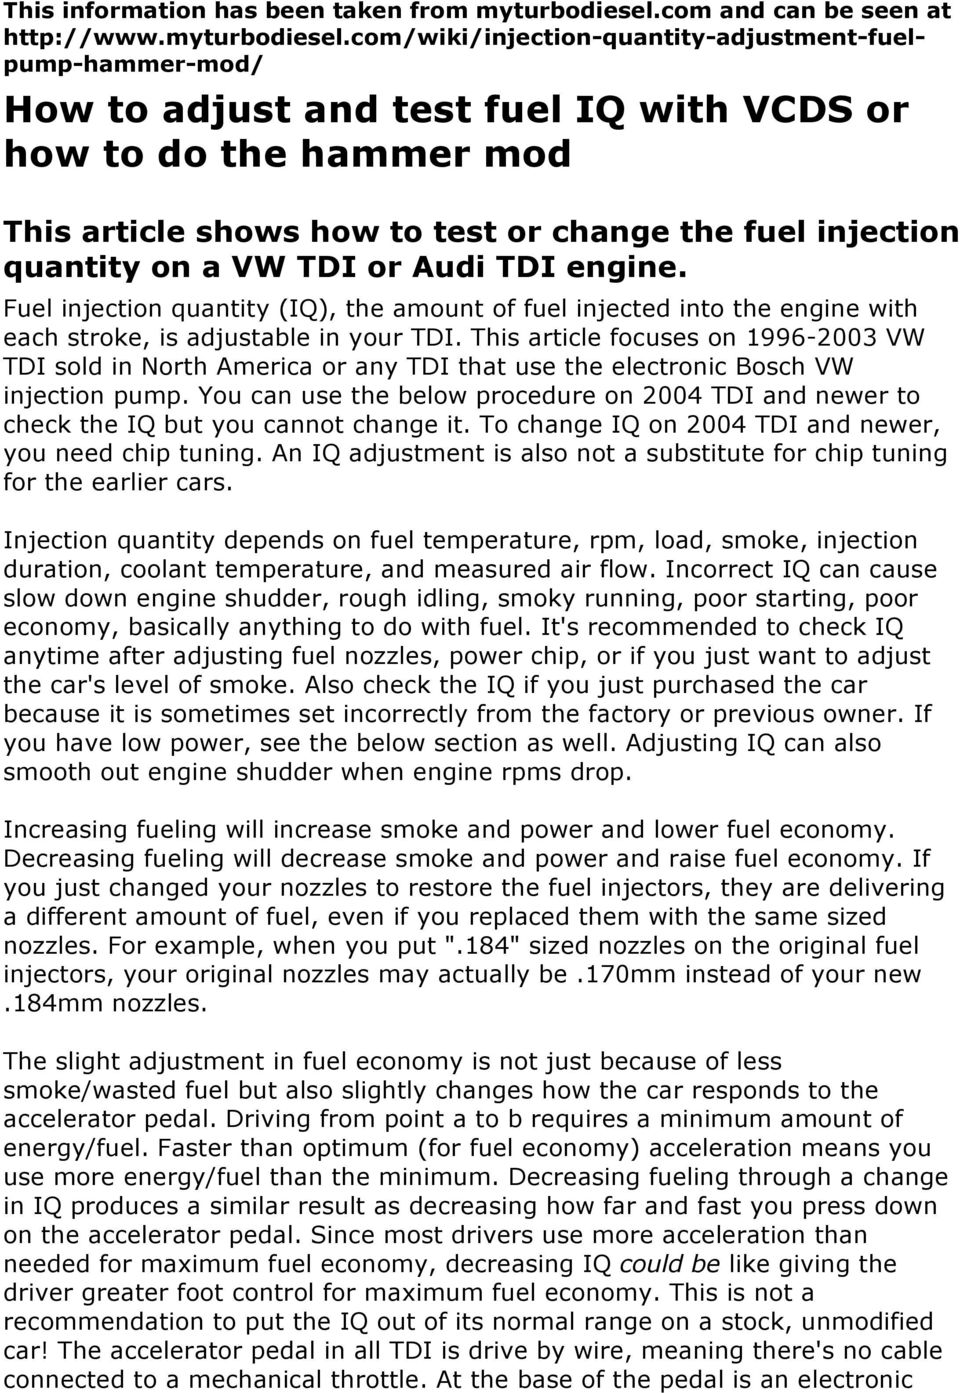 How to adjust and test fuel IQ with VCDS or how to do the